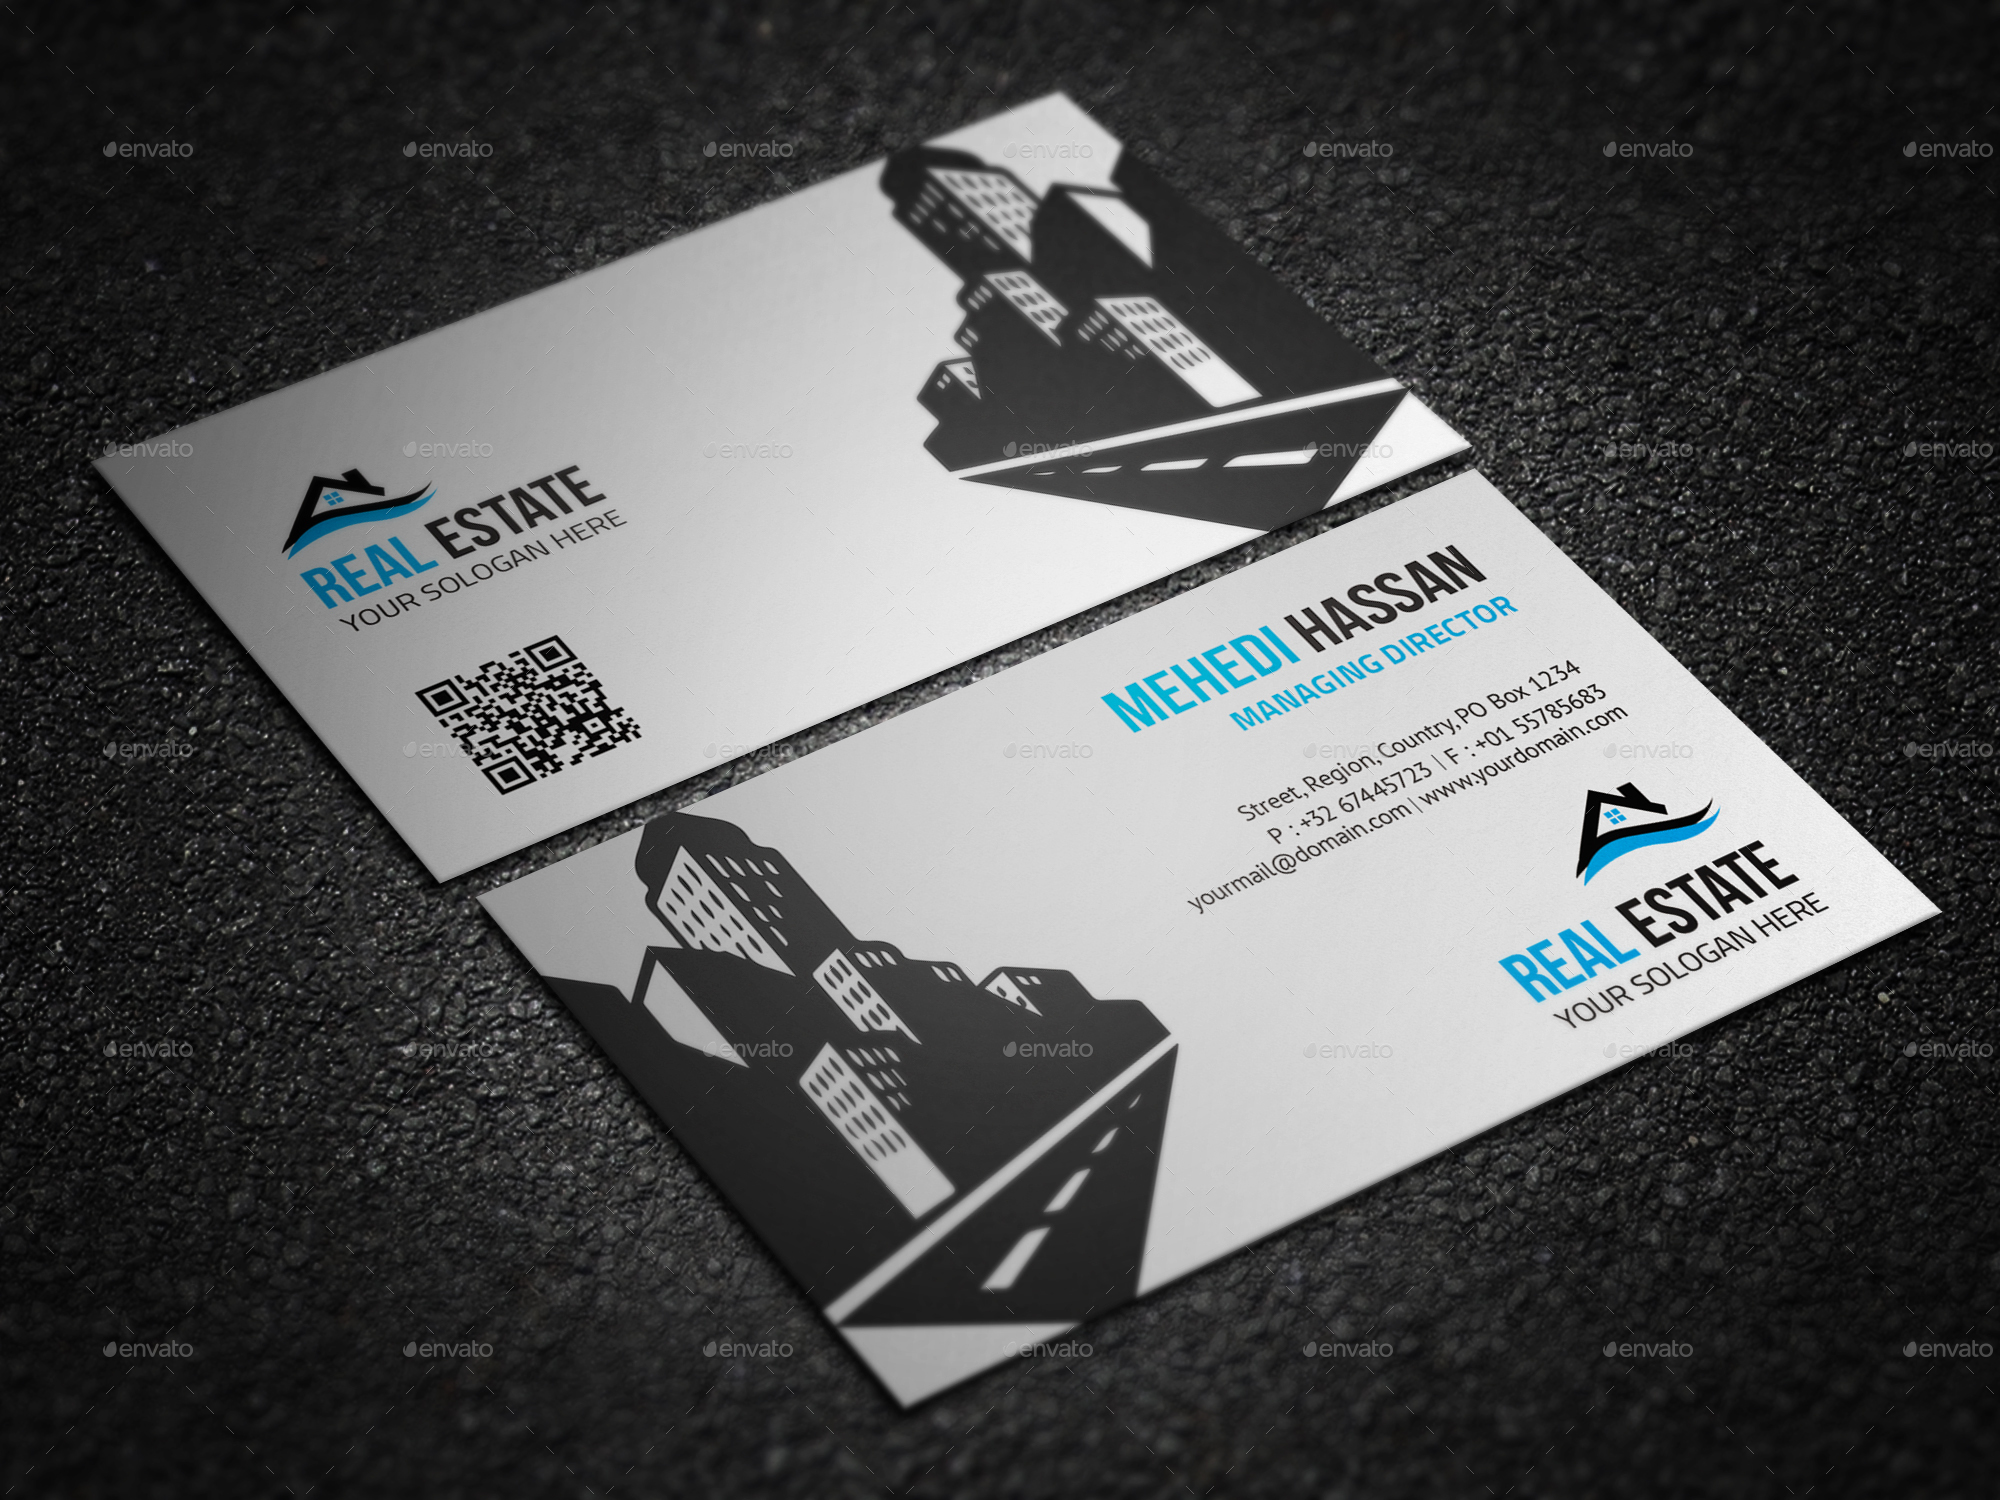 real estate business card bundle business cards print templates 1_screenshotjpg - Real Estate Business Card